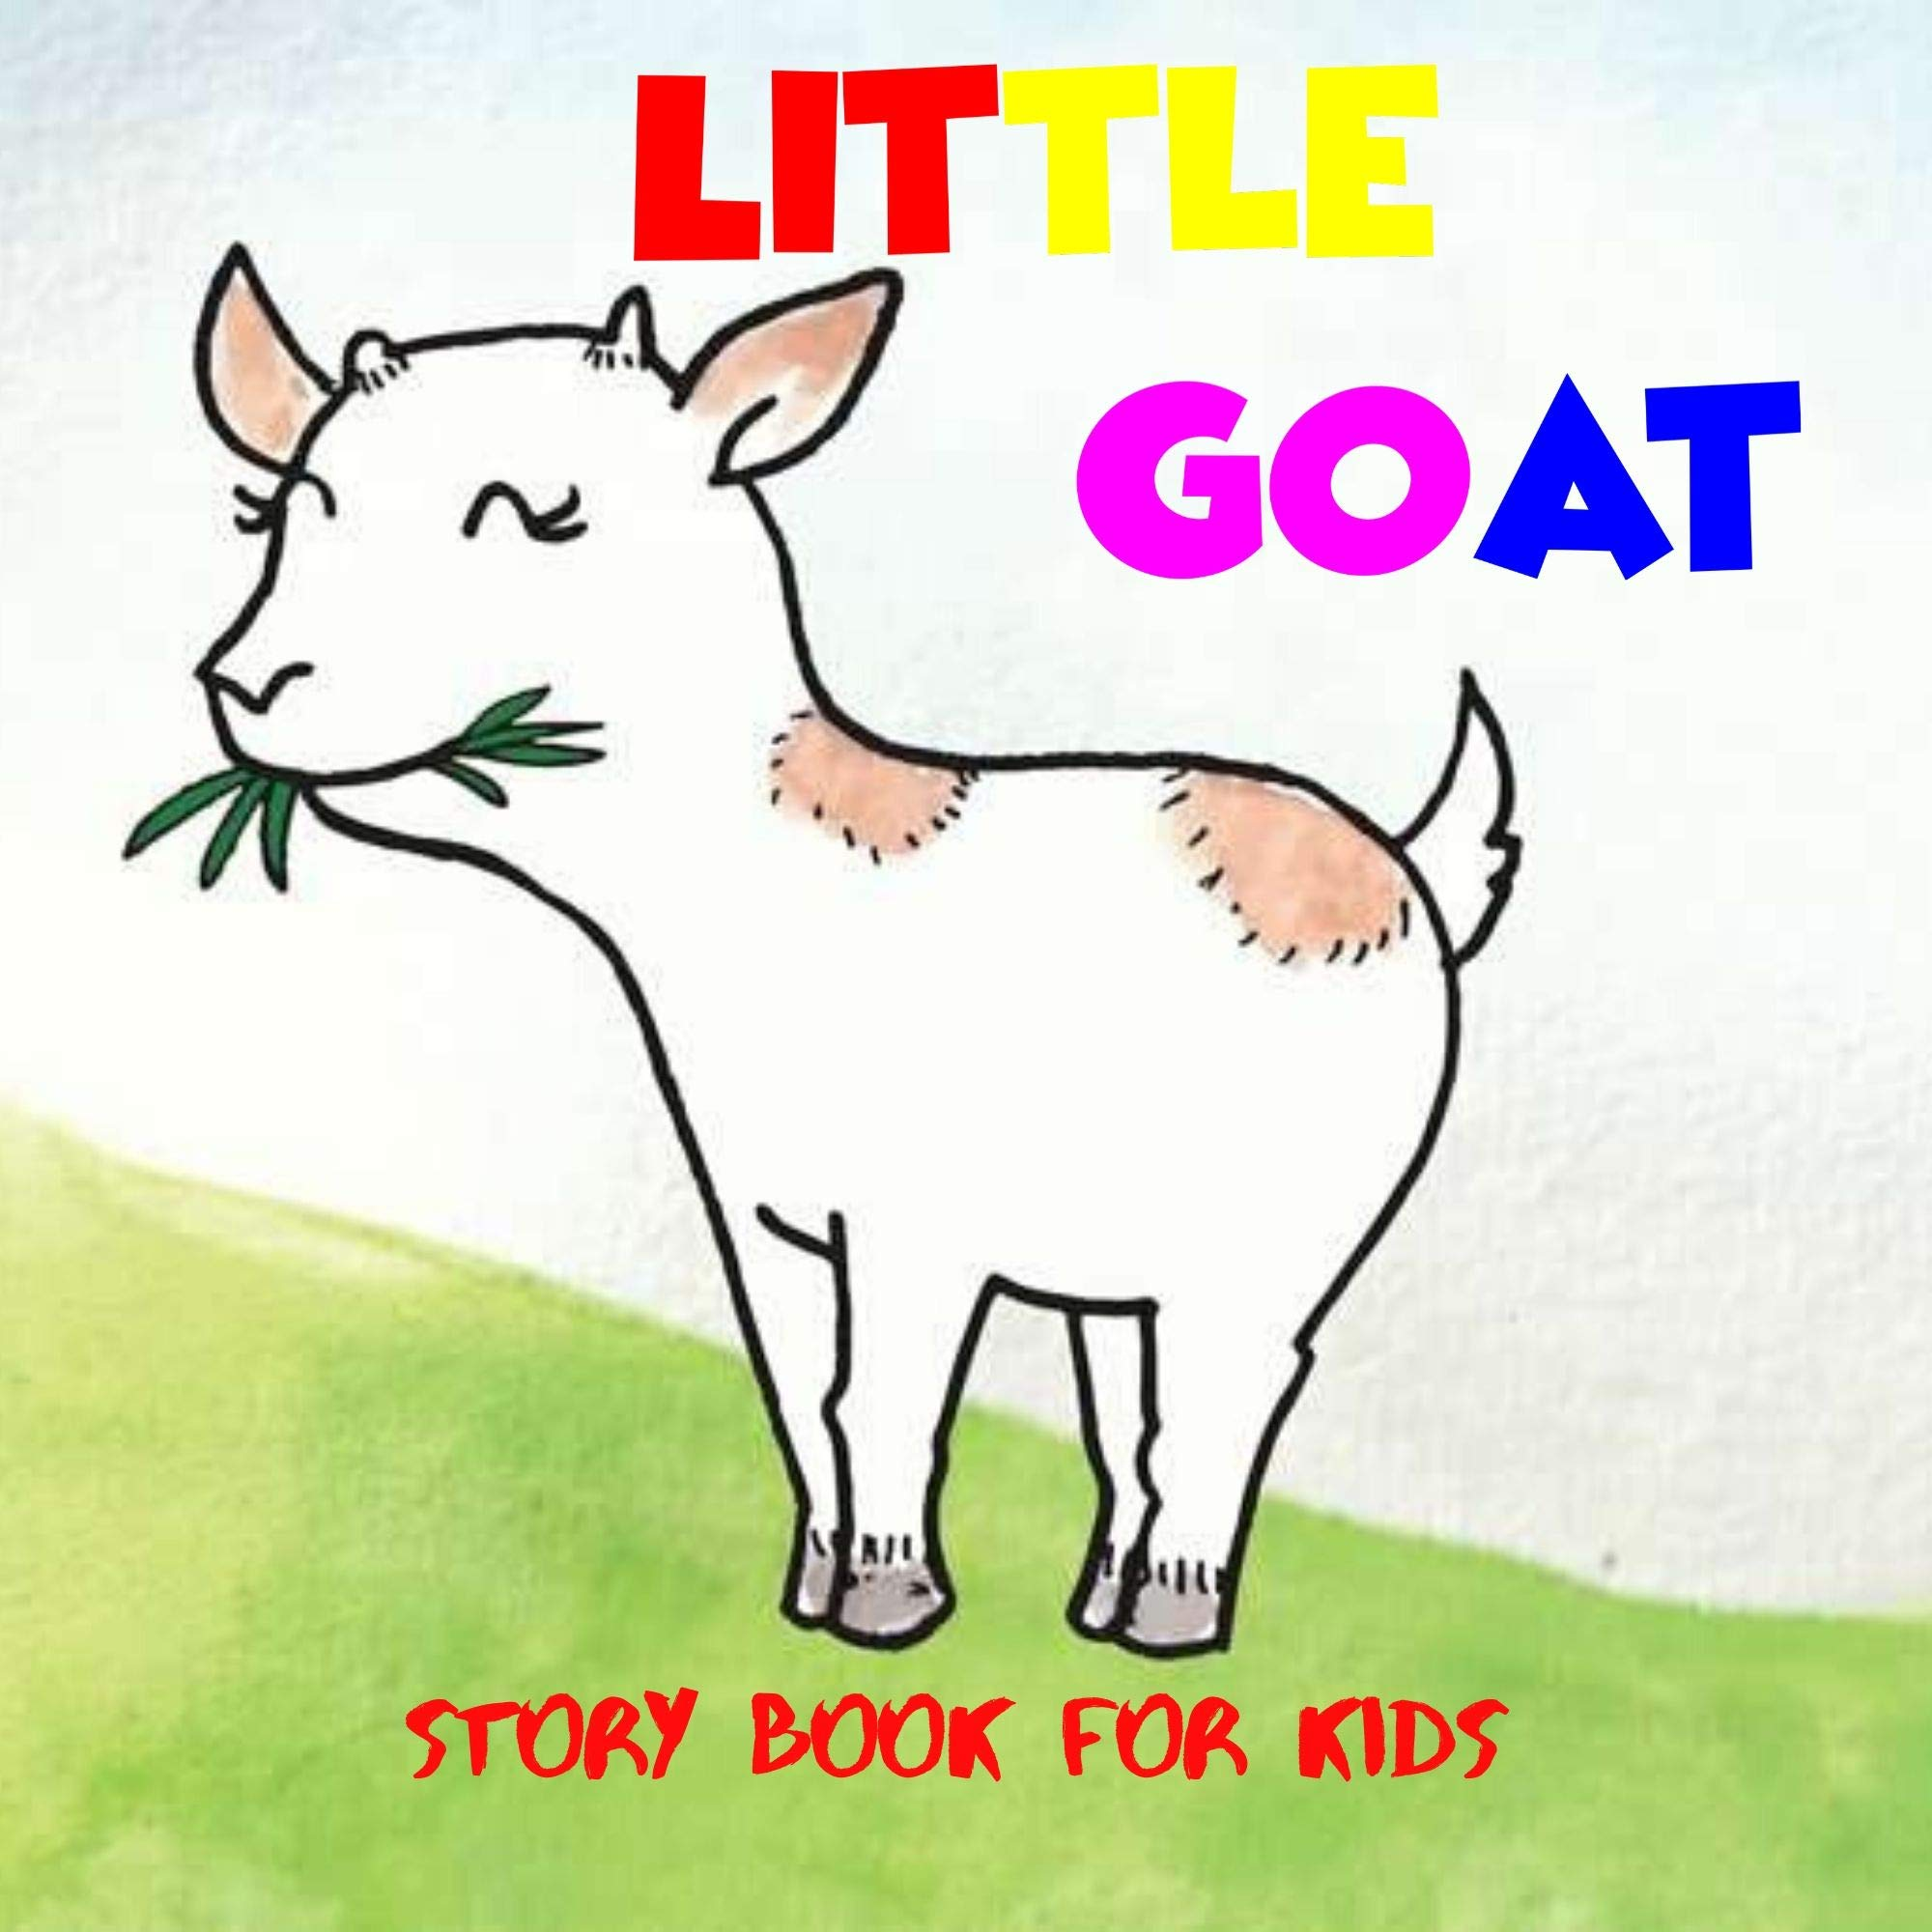 Little Goat: Before Bed Children's Book- Cute story - ages 3-8- Easy reading .